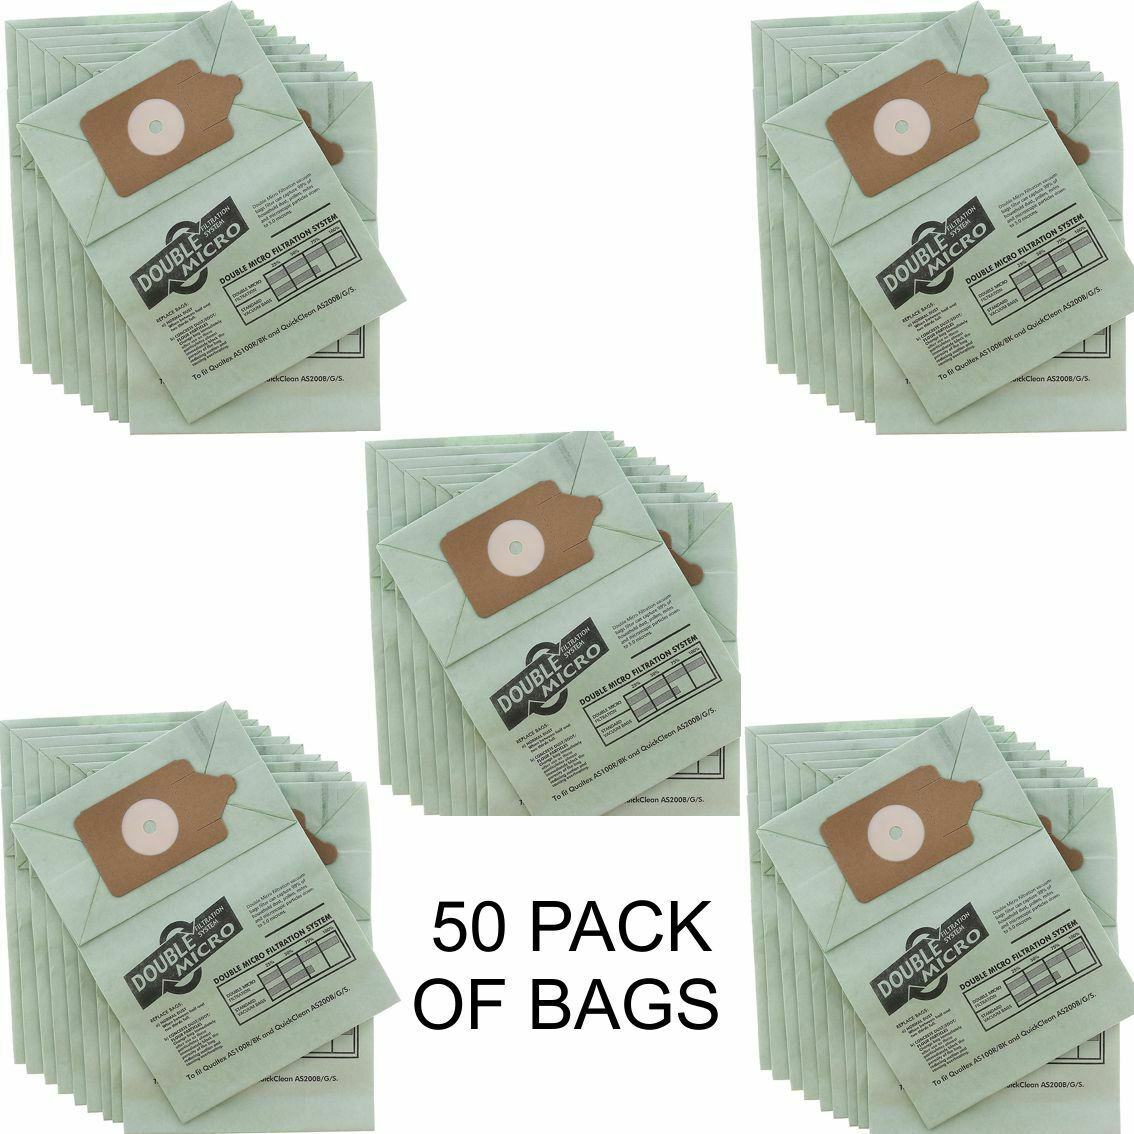 Pack of 5 Vacuum Bags Numatic Qualtex Double Micro Filtration